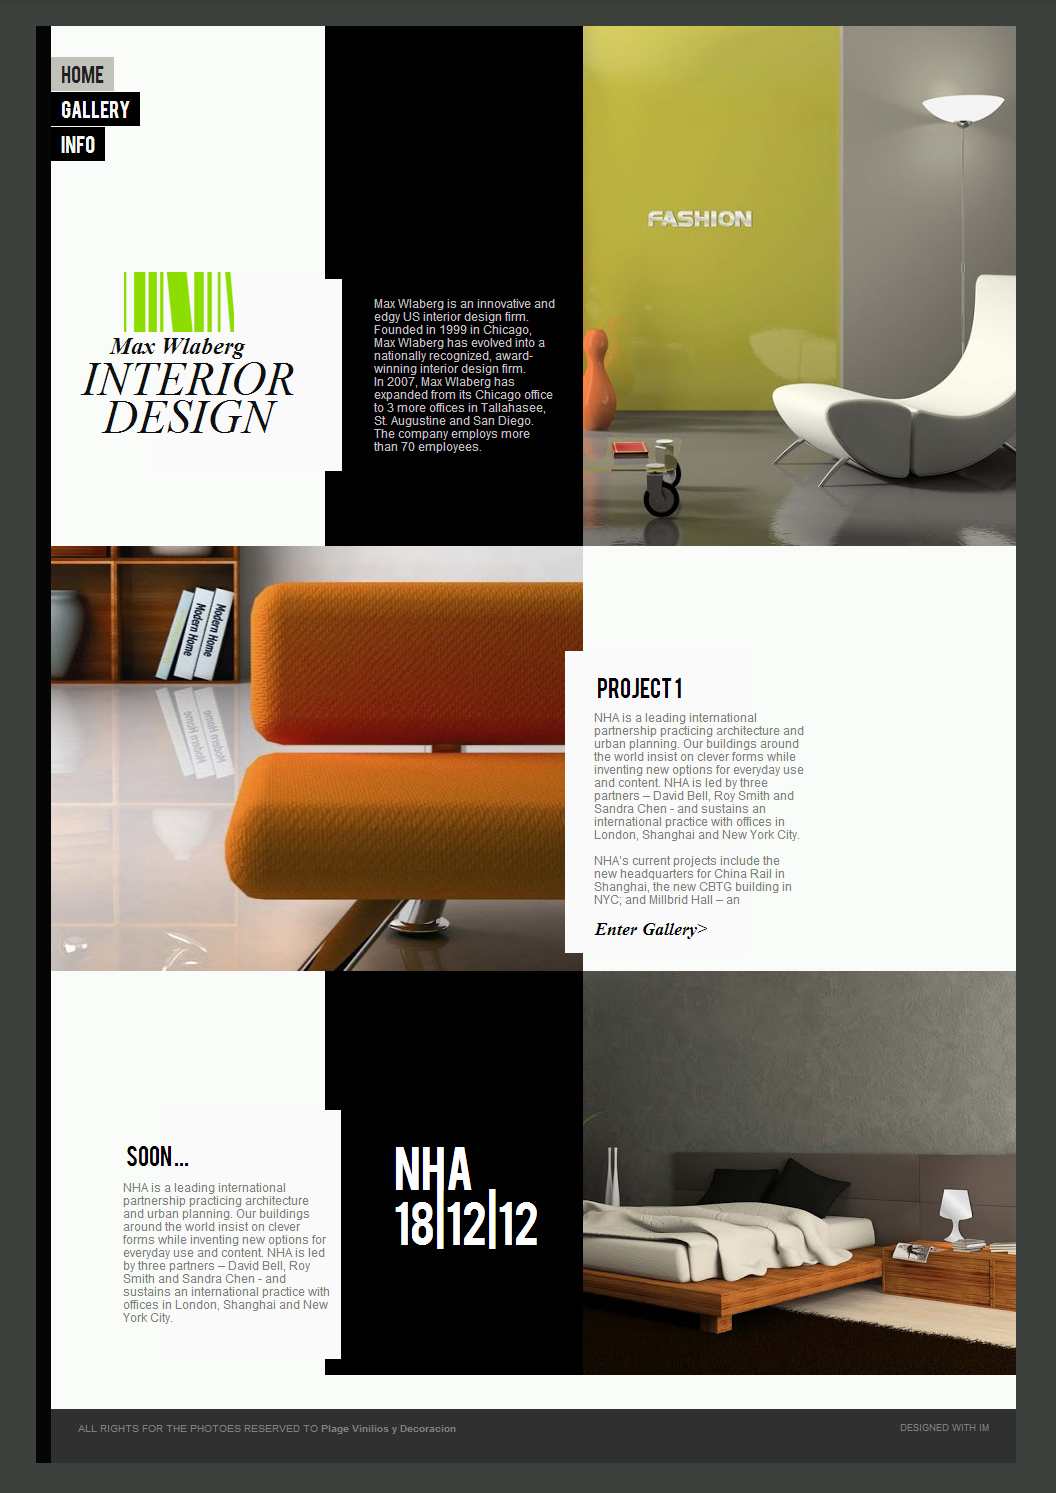 Interior design website template. Interior design website